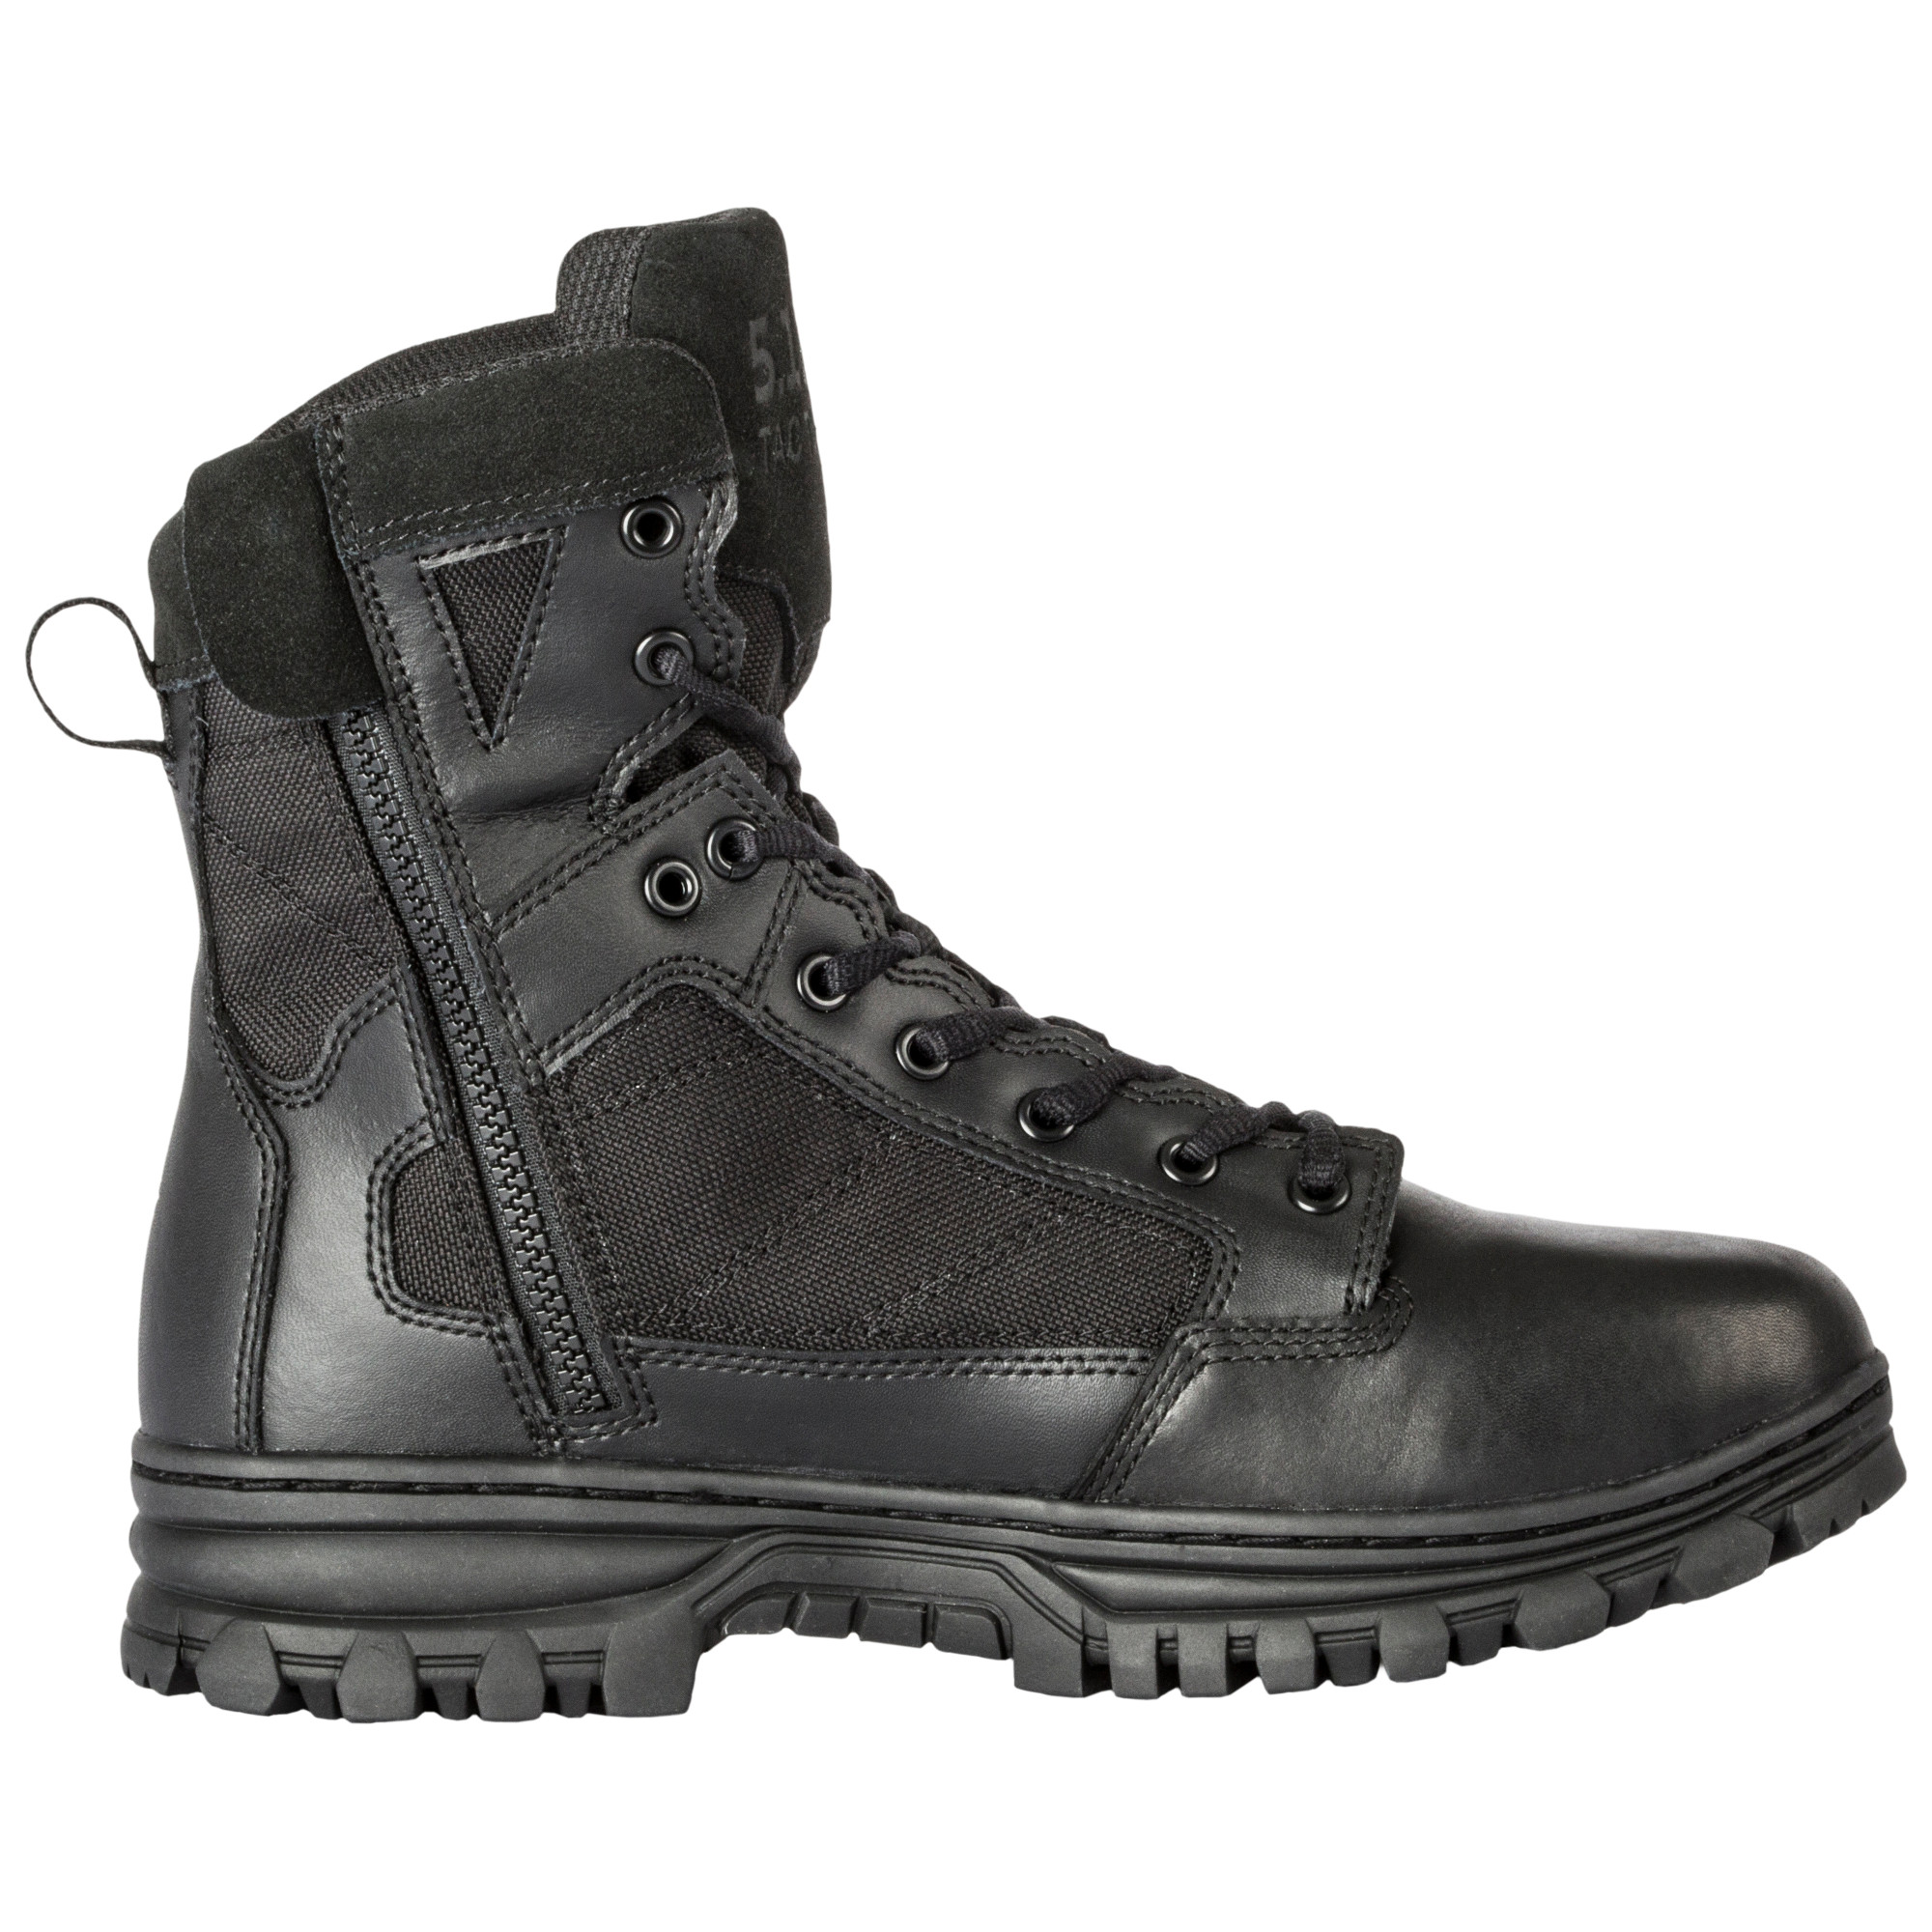 5.11 Tactical Men's EVO 6 Boot with Sidezip thumbnail